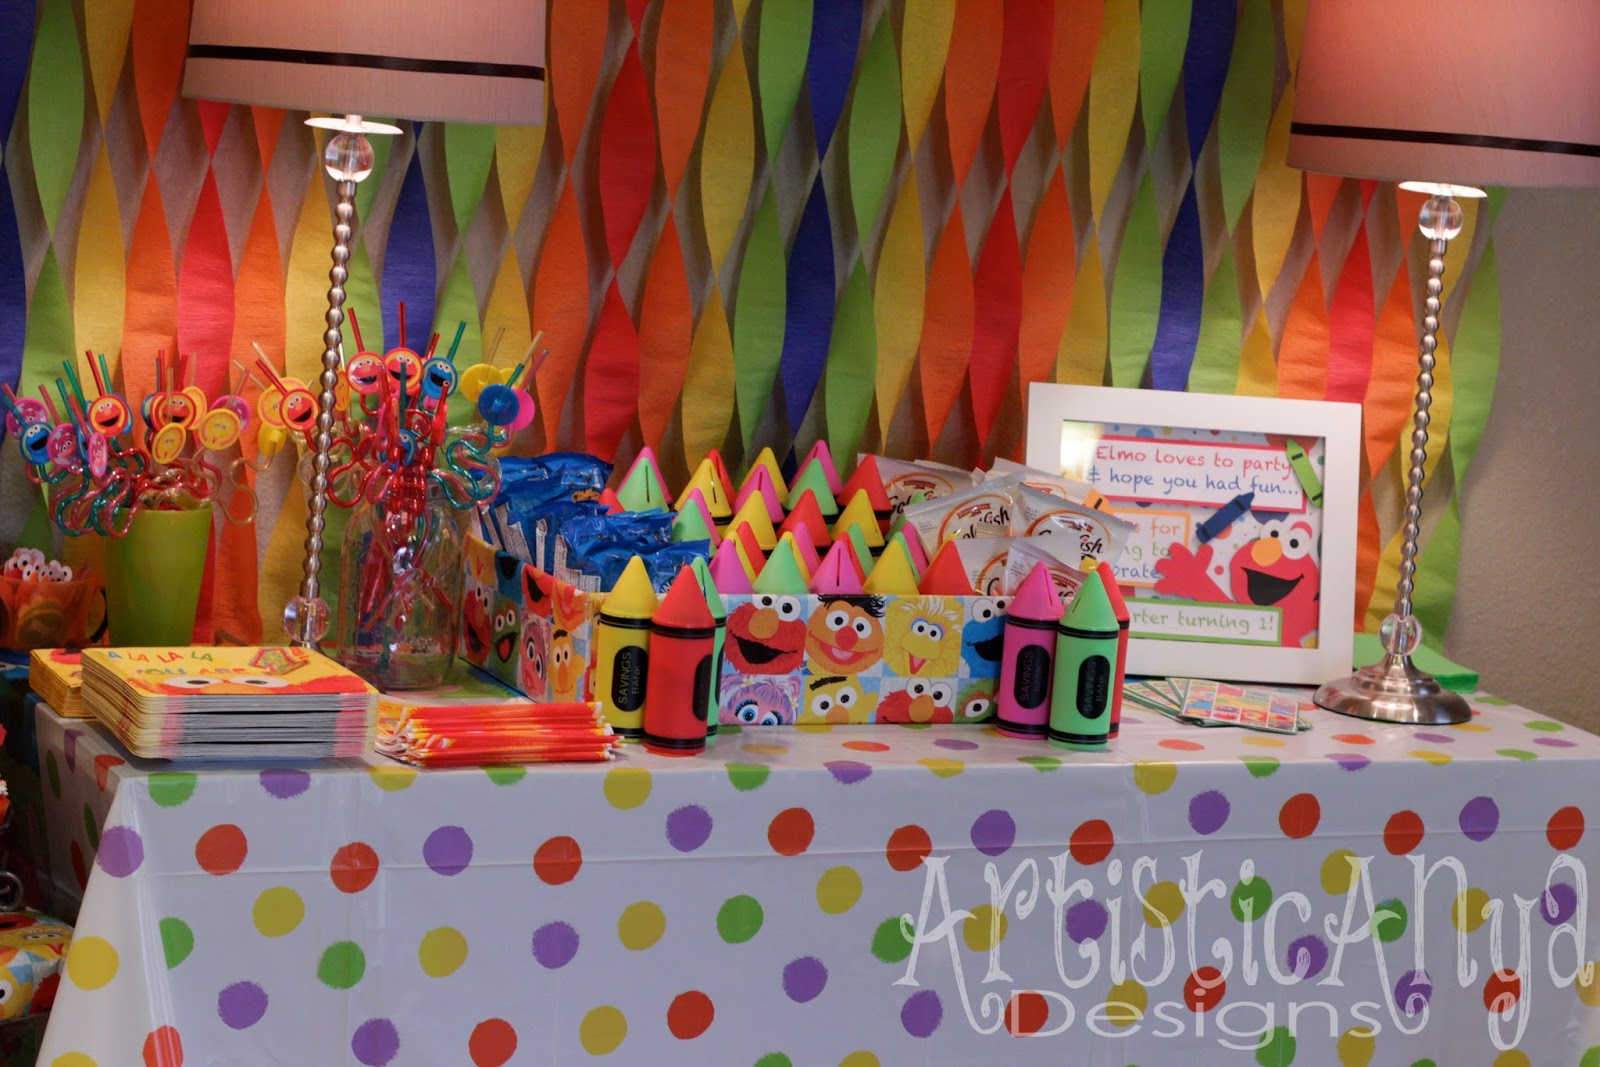 Elmo 1st birthday party ideas birthday party sesamestreet -  Street Theme For His 1st Birthday I Wanted To Make Everything Colorful And Fun For His Big Day From Rainbow Cupcakes Streamers Balloons